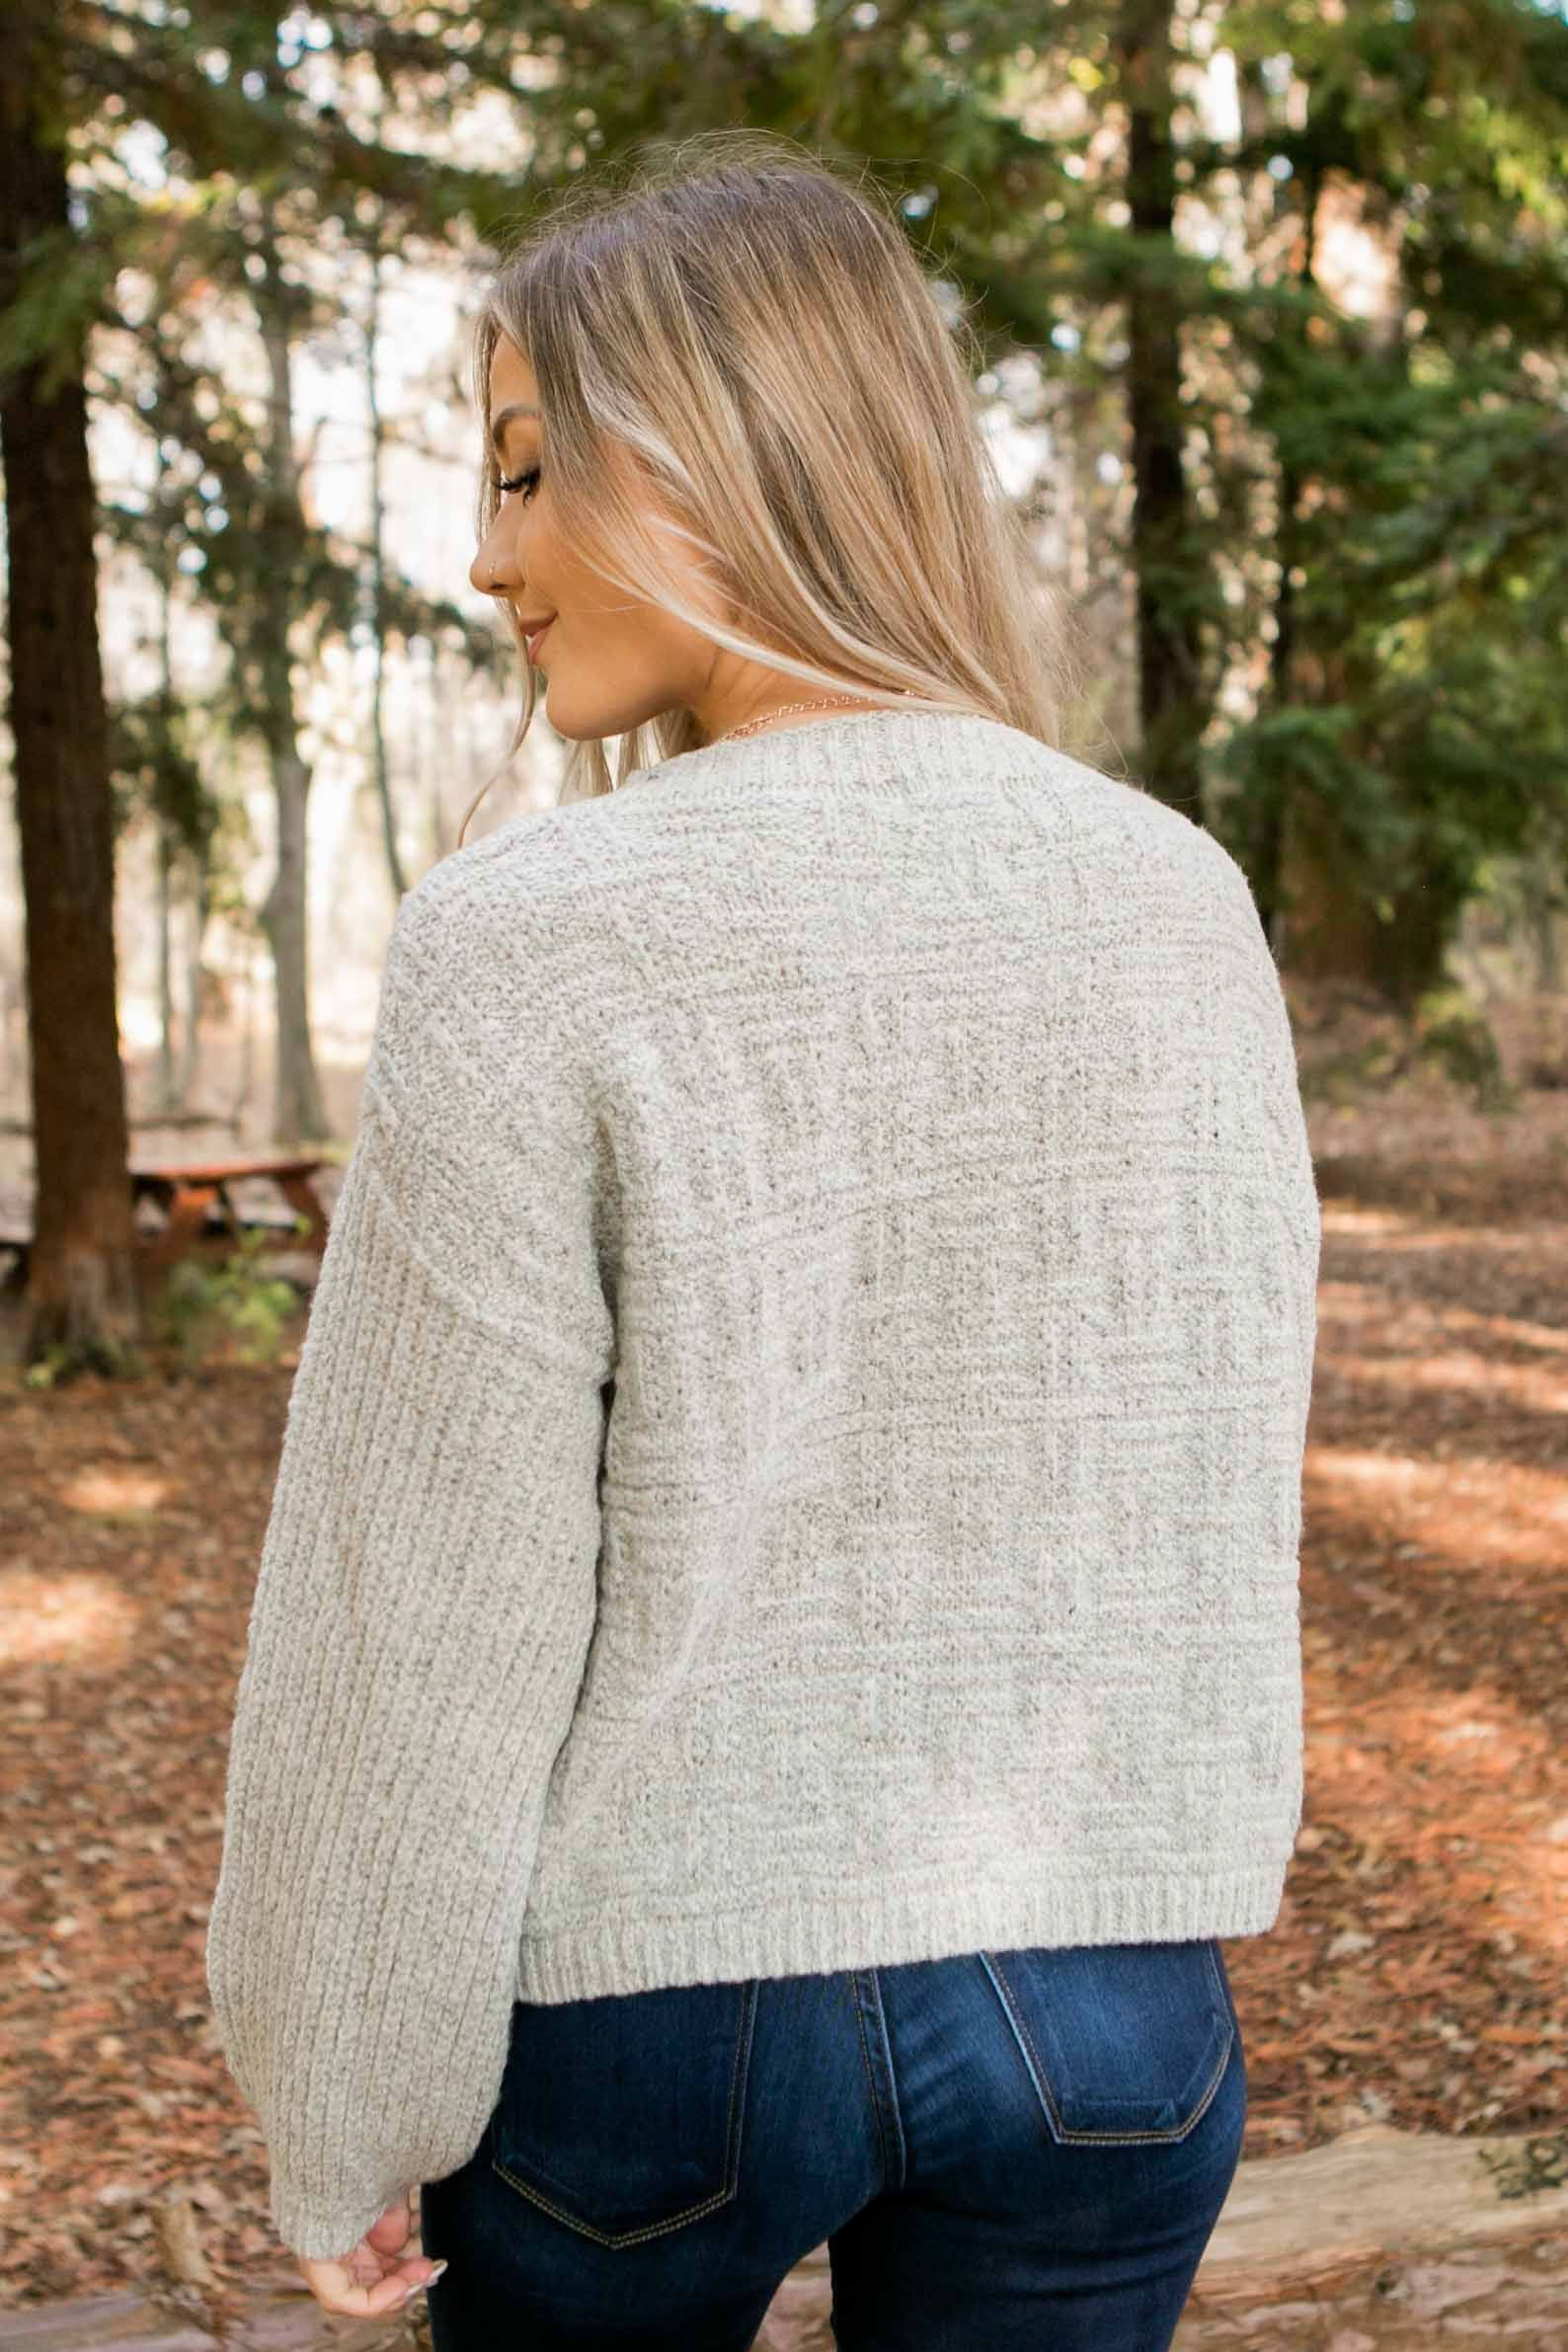 The Traveler Sweater